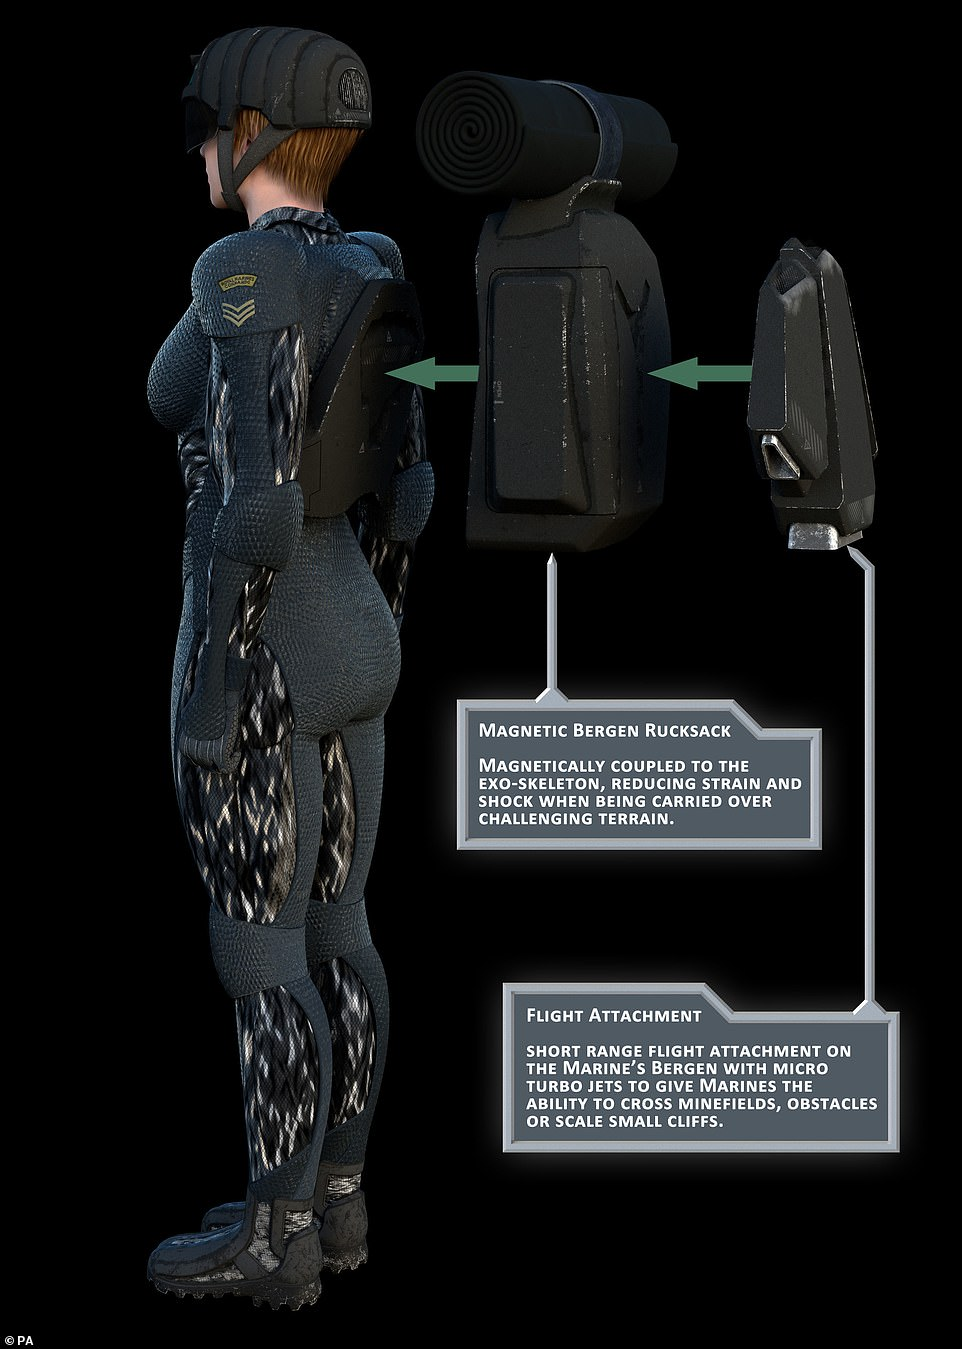 The picture above, a profile view of the exoskeleton suit, shows the additional pieces included. The magnetic backpack would latch on to the suit, reducing strain and shock on the wearer, making it easier to carry large loads. The Royal Navy said they would hope to deploy some of these pieces in the future